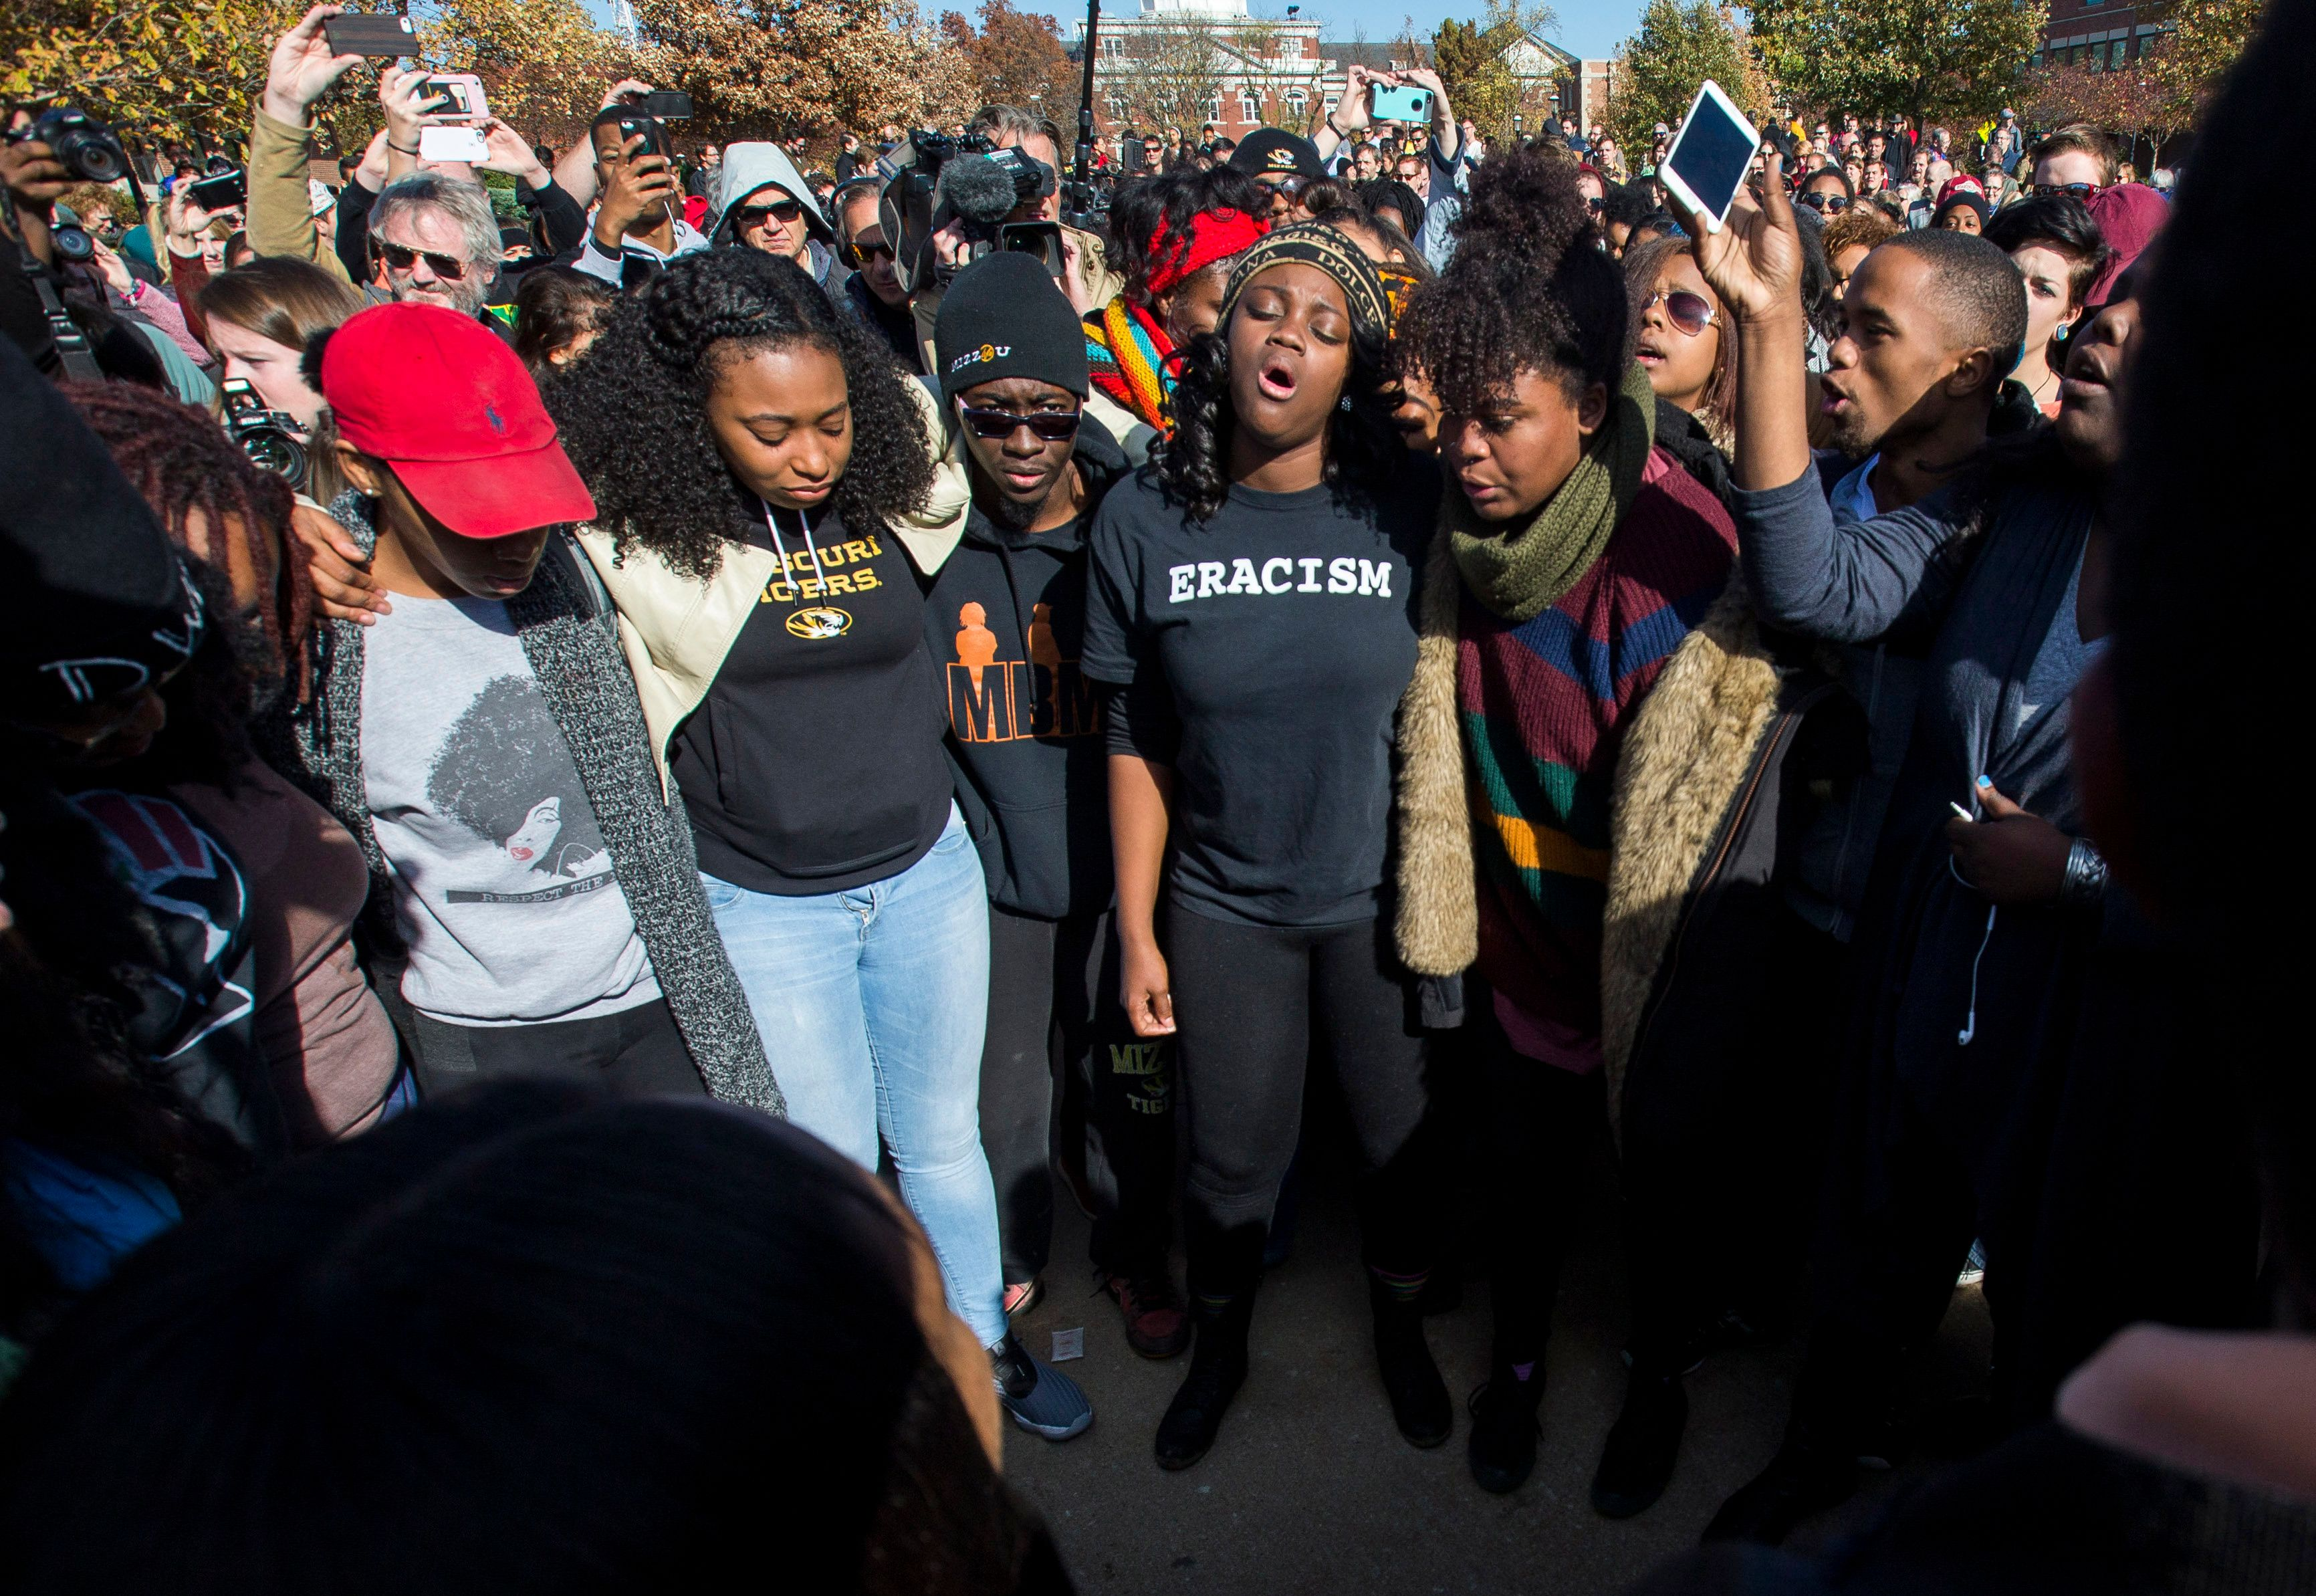 COLUMBIA, MO - NOVEMBER 9:  Members of Concerned Student 1950 celebrate after the resignation of Missouri University president Timothy M. Wolfe on the Missouri University Campus November 9, 2015 in Columbia, Missouri. Wolfe resigned after pressure from students and student athletes over his perceived insensitivity to racism on the university campus.  (Photo by Brian Davidson/Getty Images)